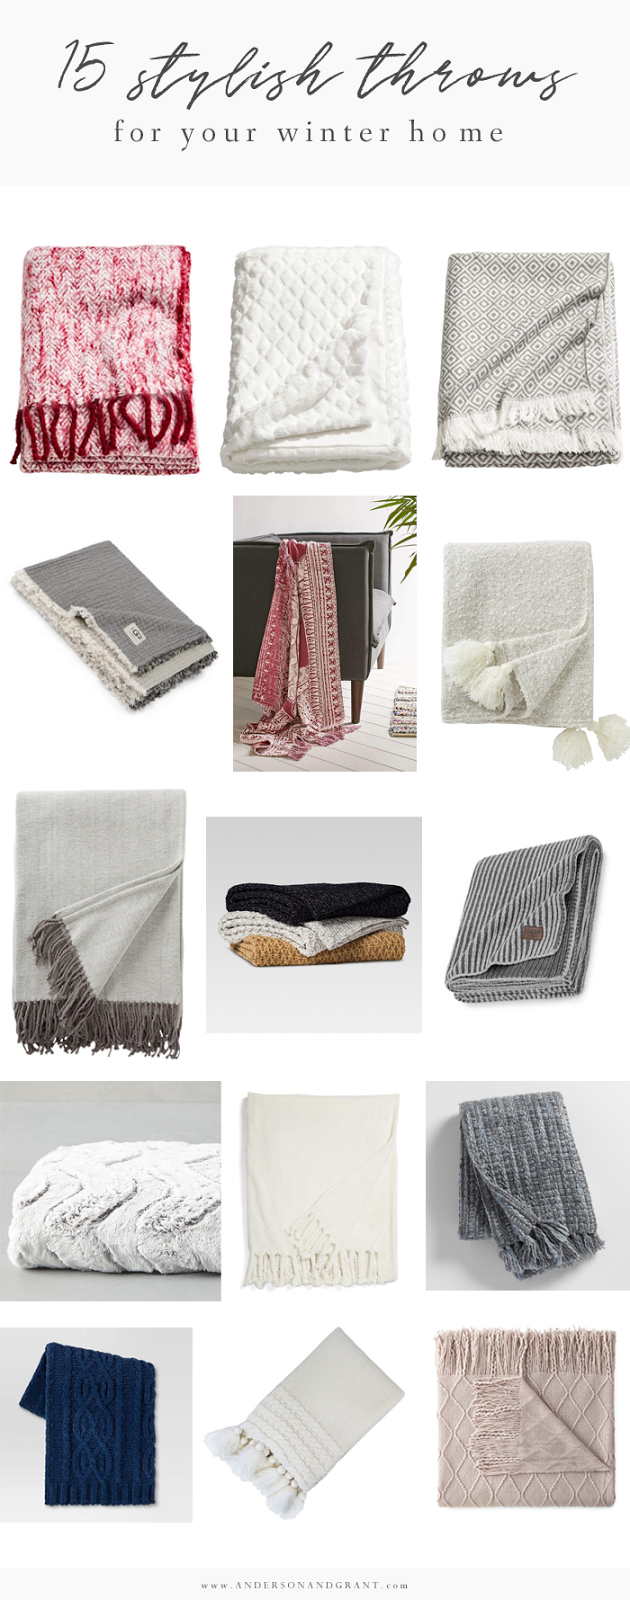 15 Stylish Throw Blankets for Your Winter Home |  www.andersonandgrant.com